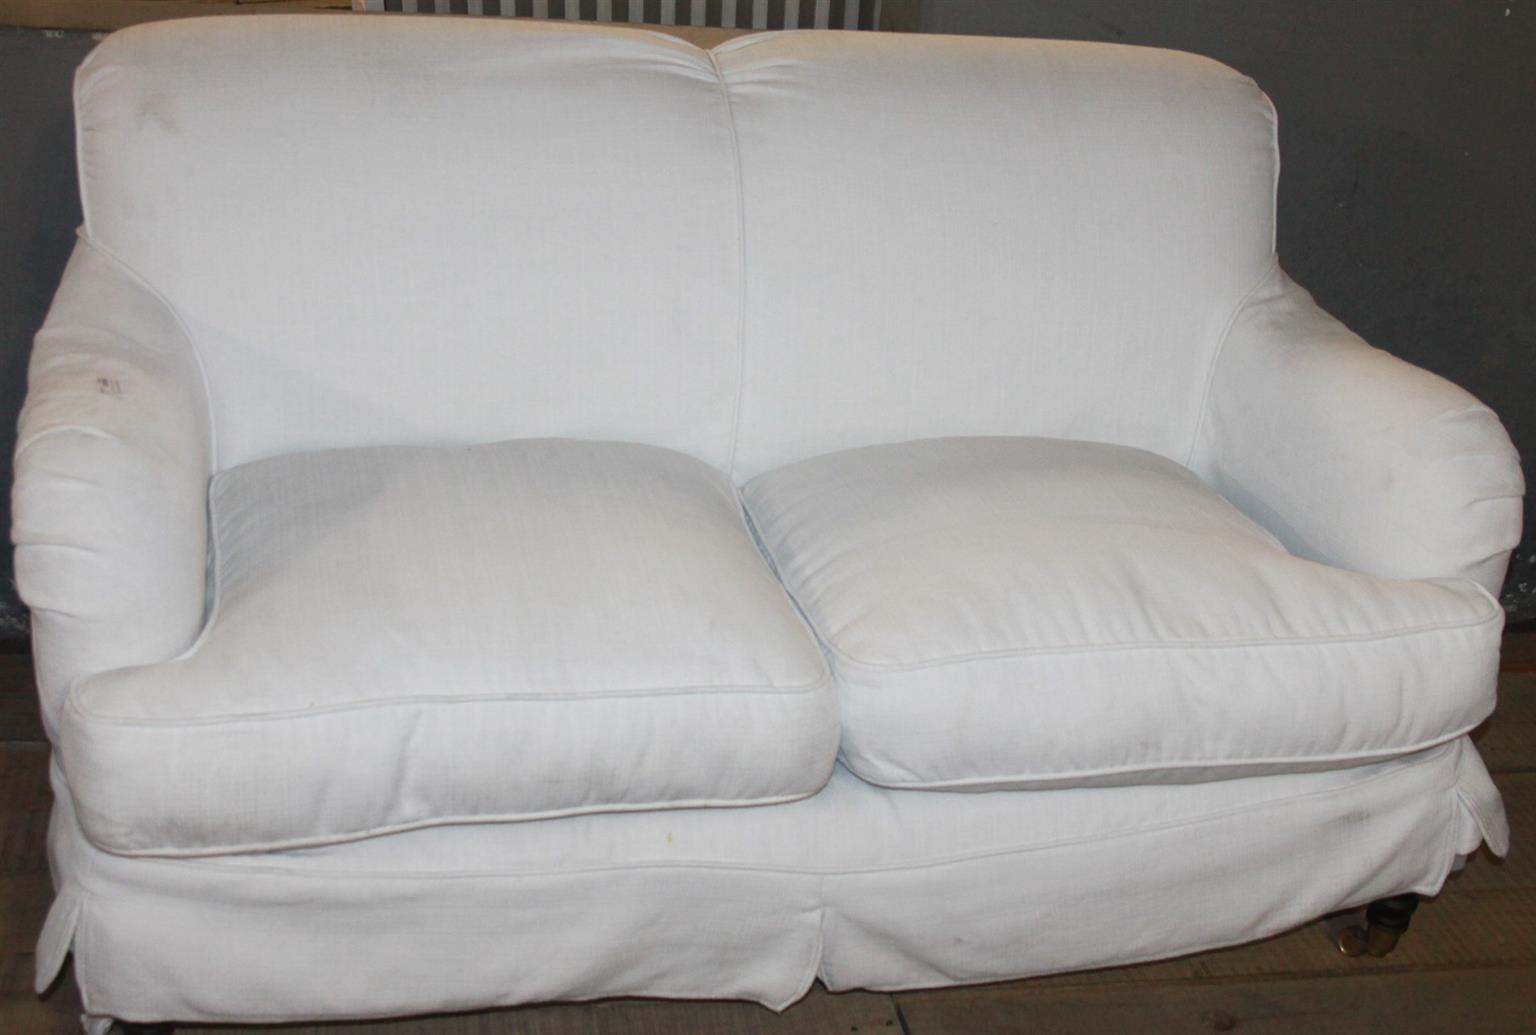 2 seater couch S026525c #Rosettenvillepawnshop